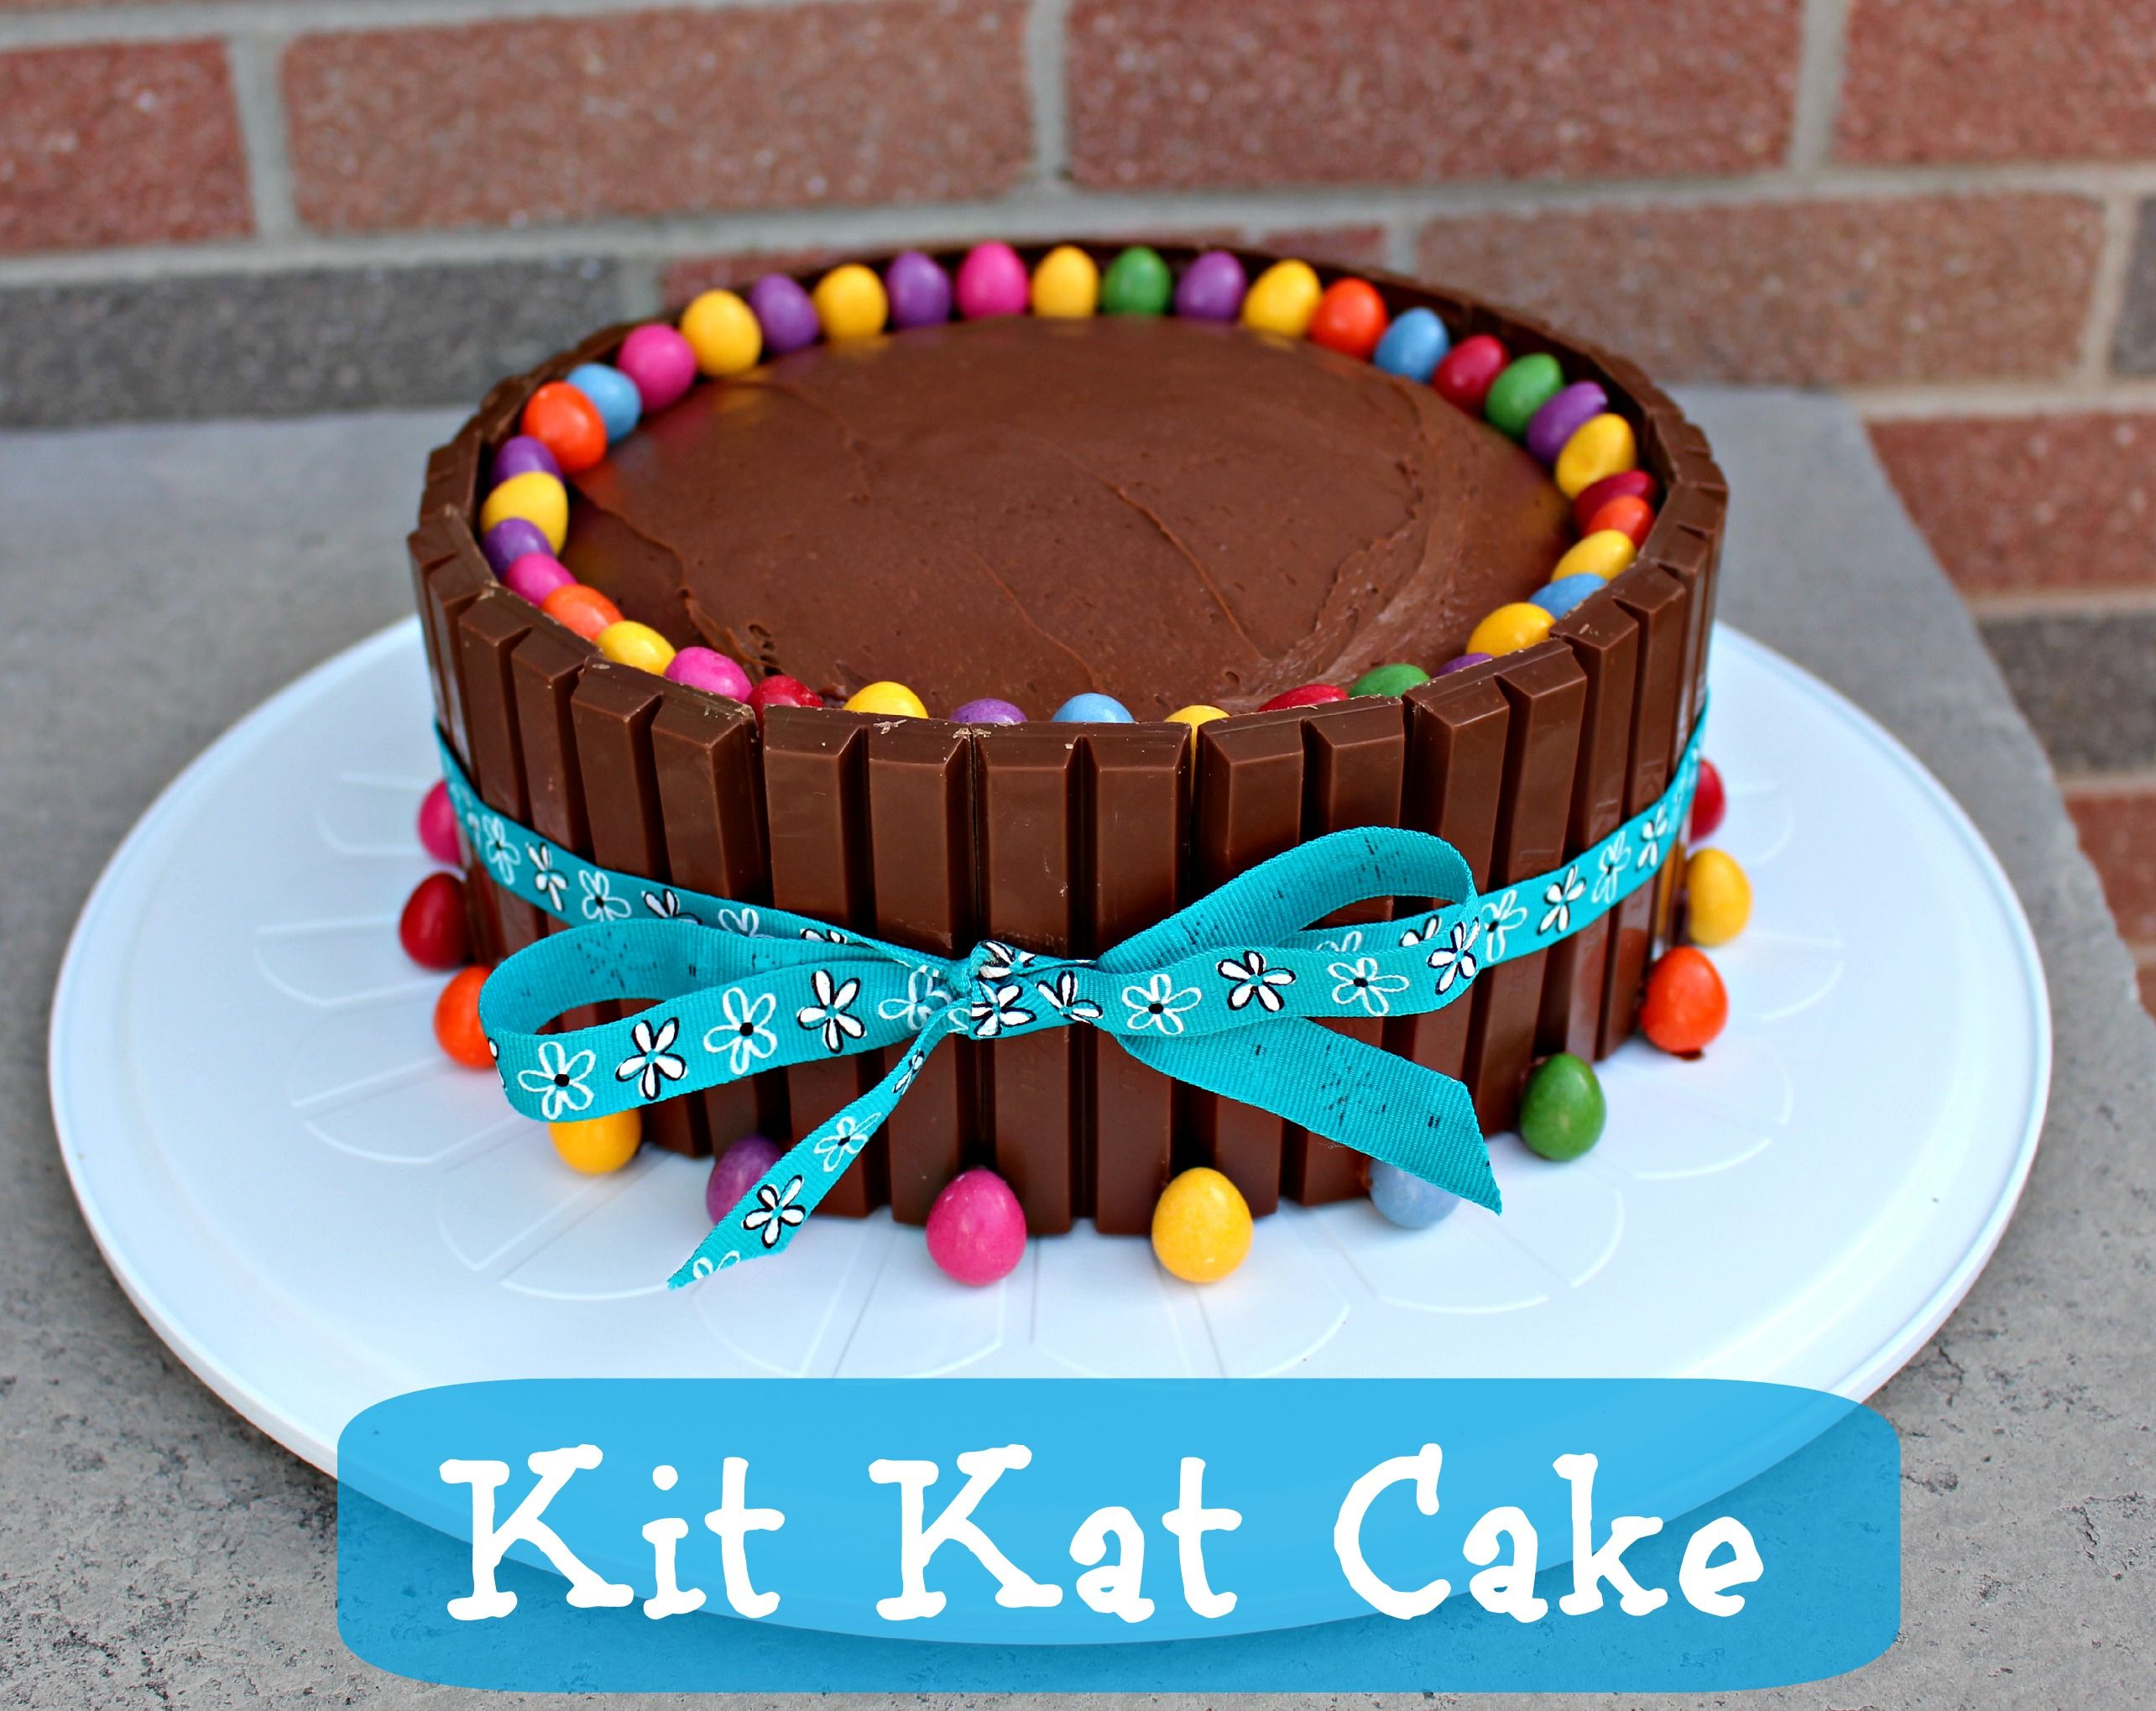 Kit Kat Cake Recipe Birthday Cakes For Teens Easy Birthday